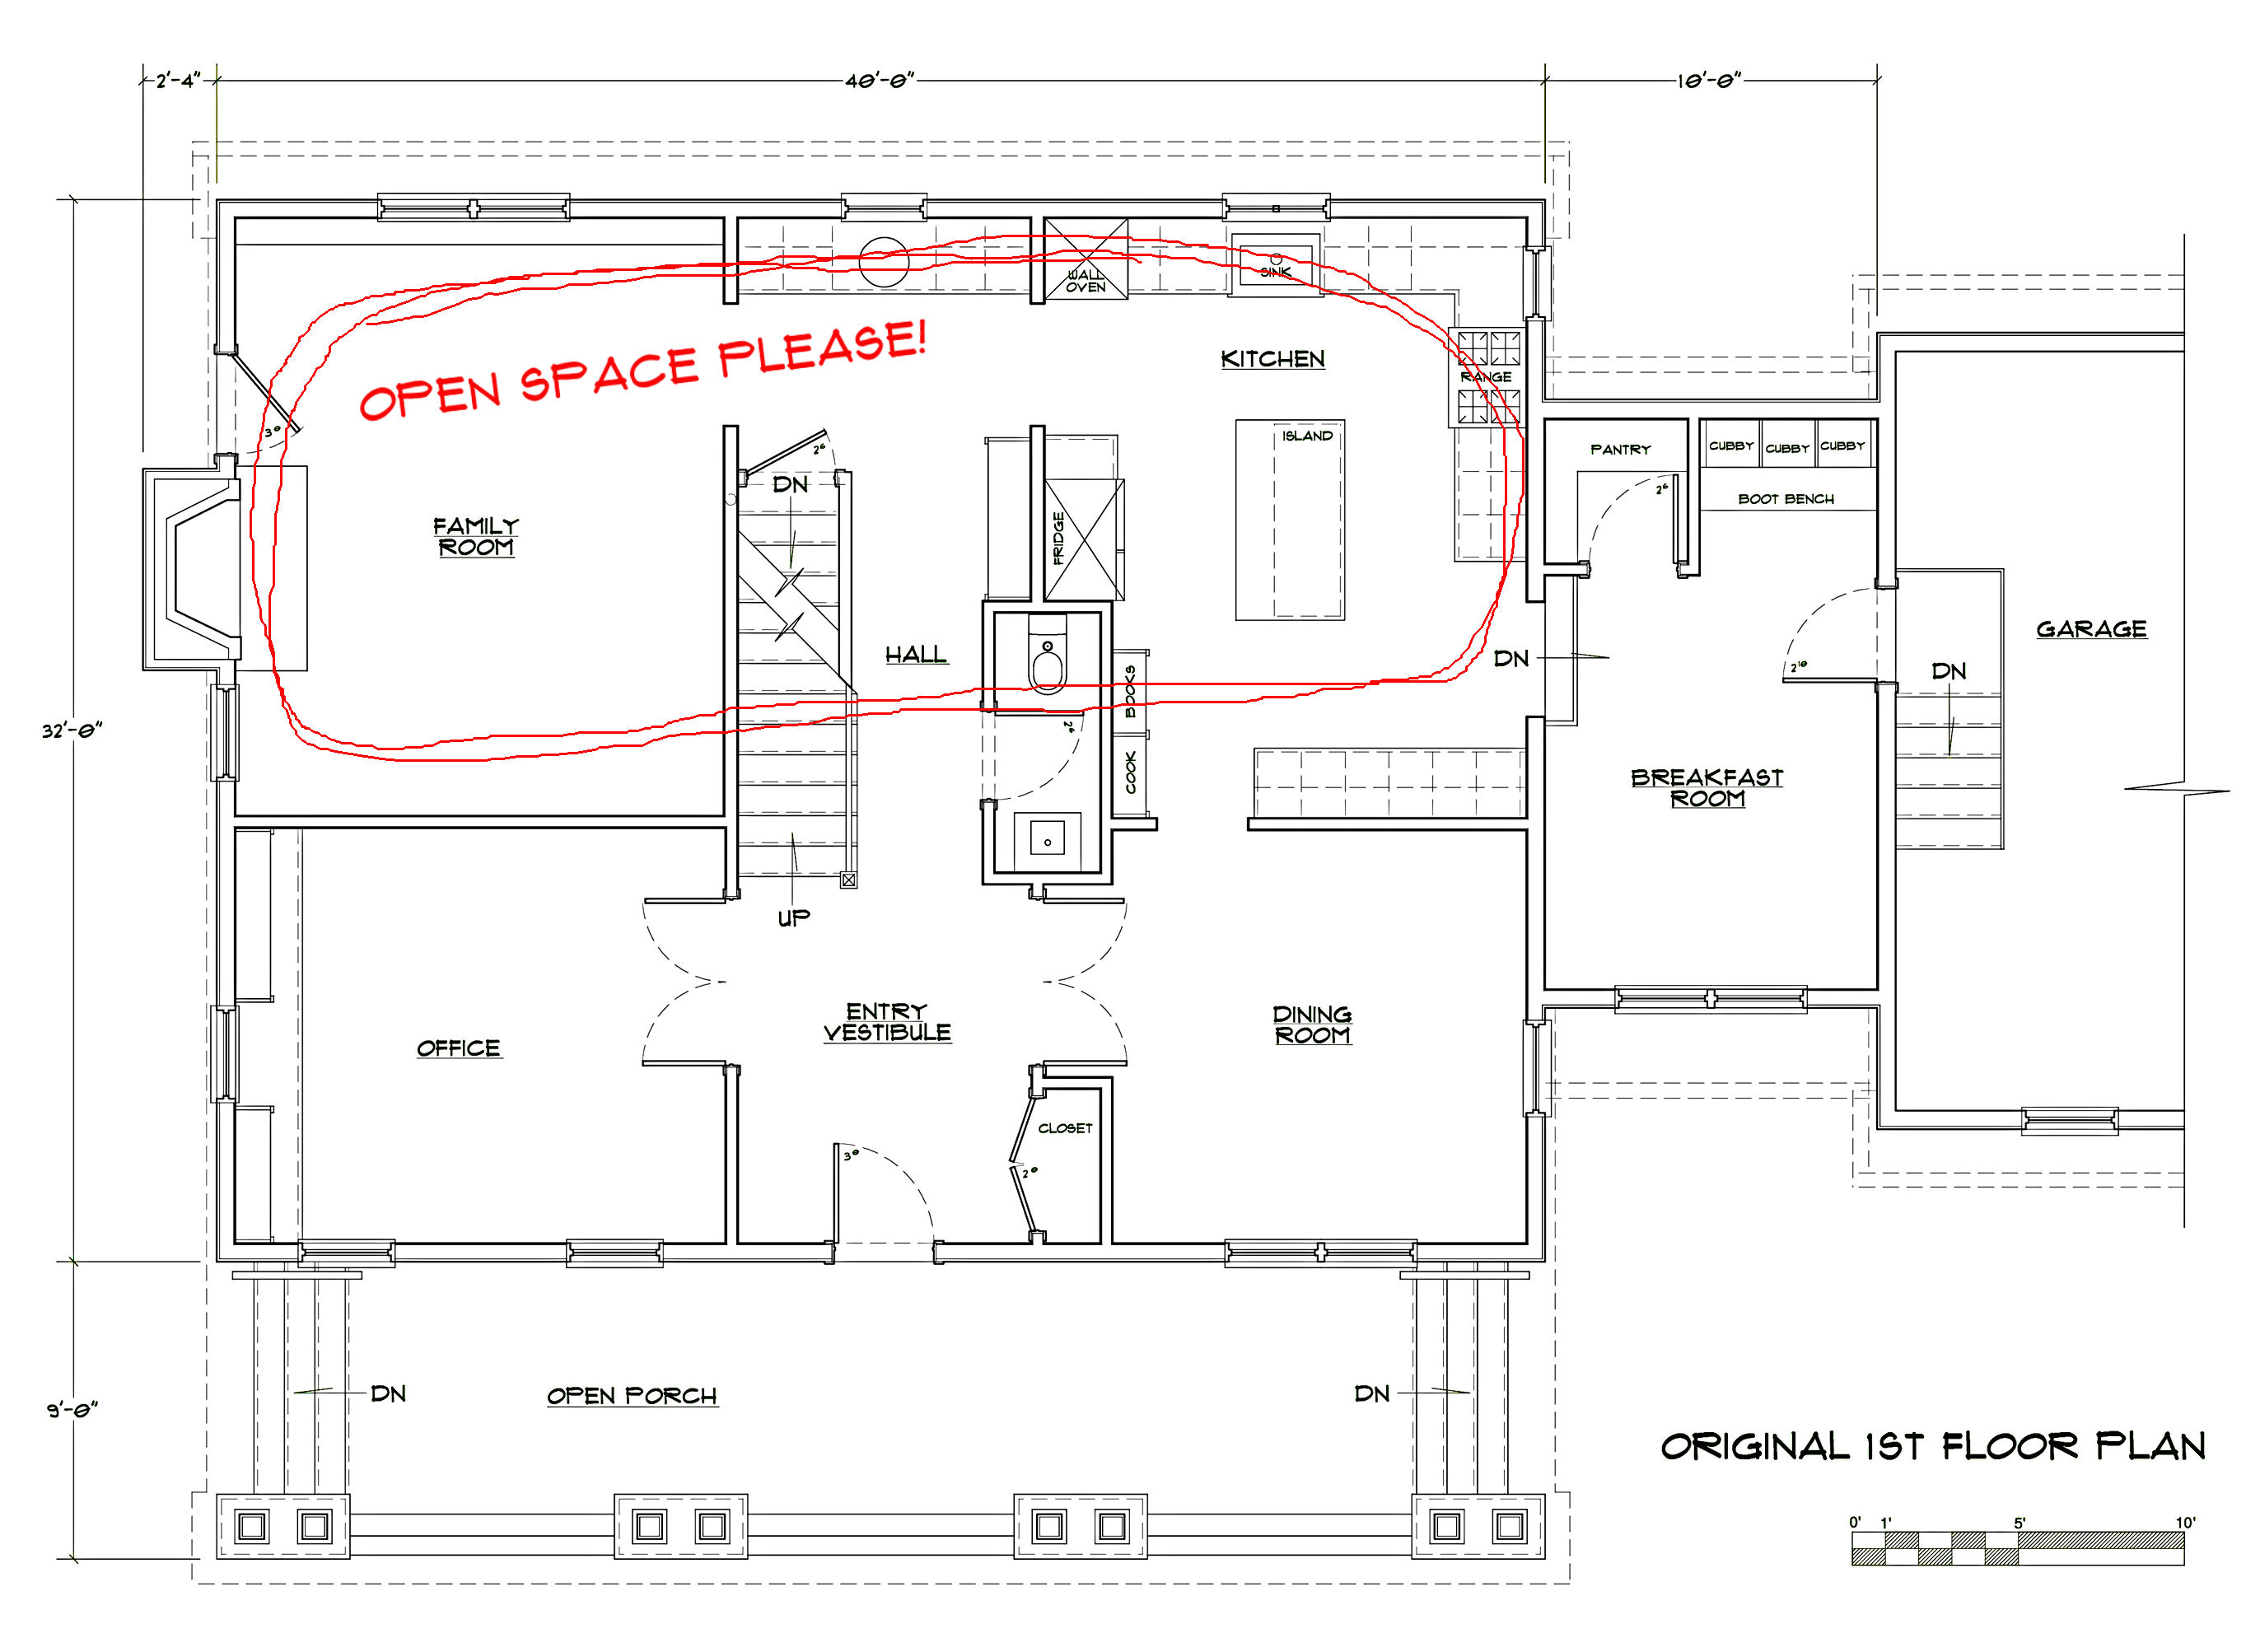 how-to-customize-a-spec-house-1st-flr-plan-image-2